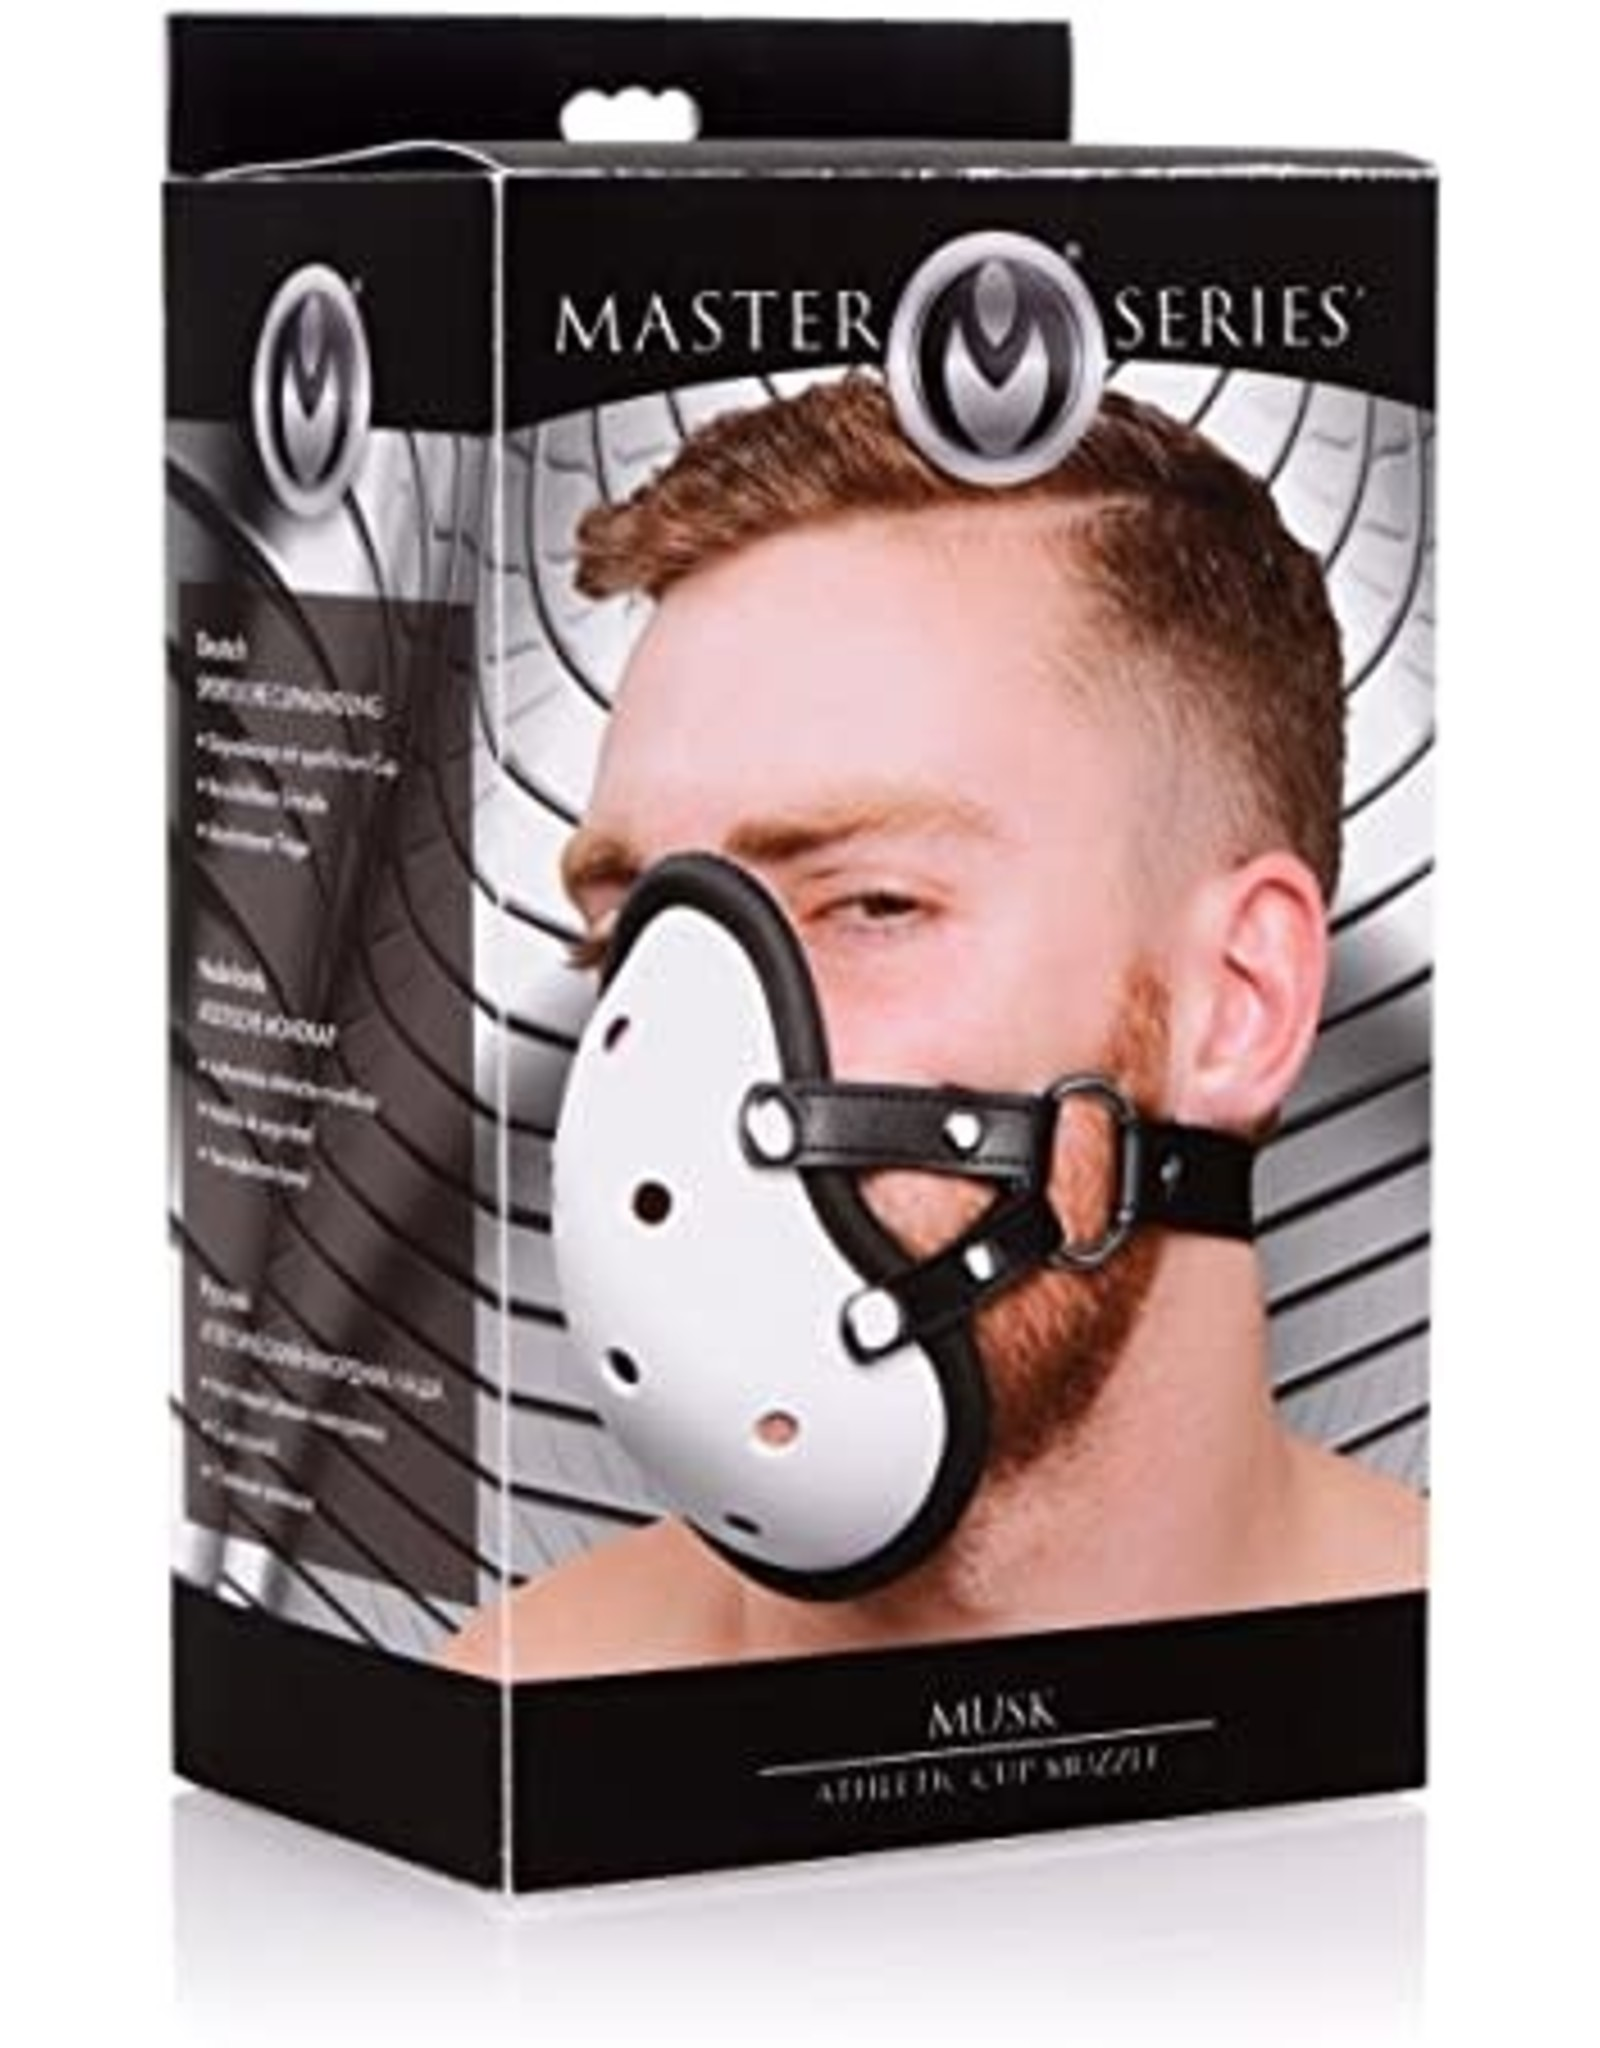 MASTER SERIES - MUSK ATHLETIC CUP MUZZLE